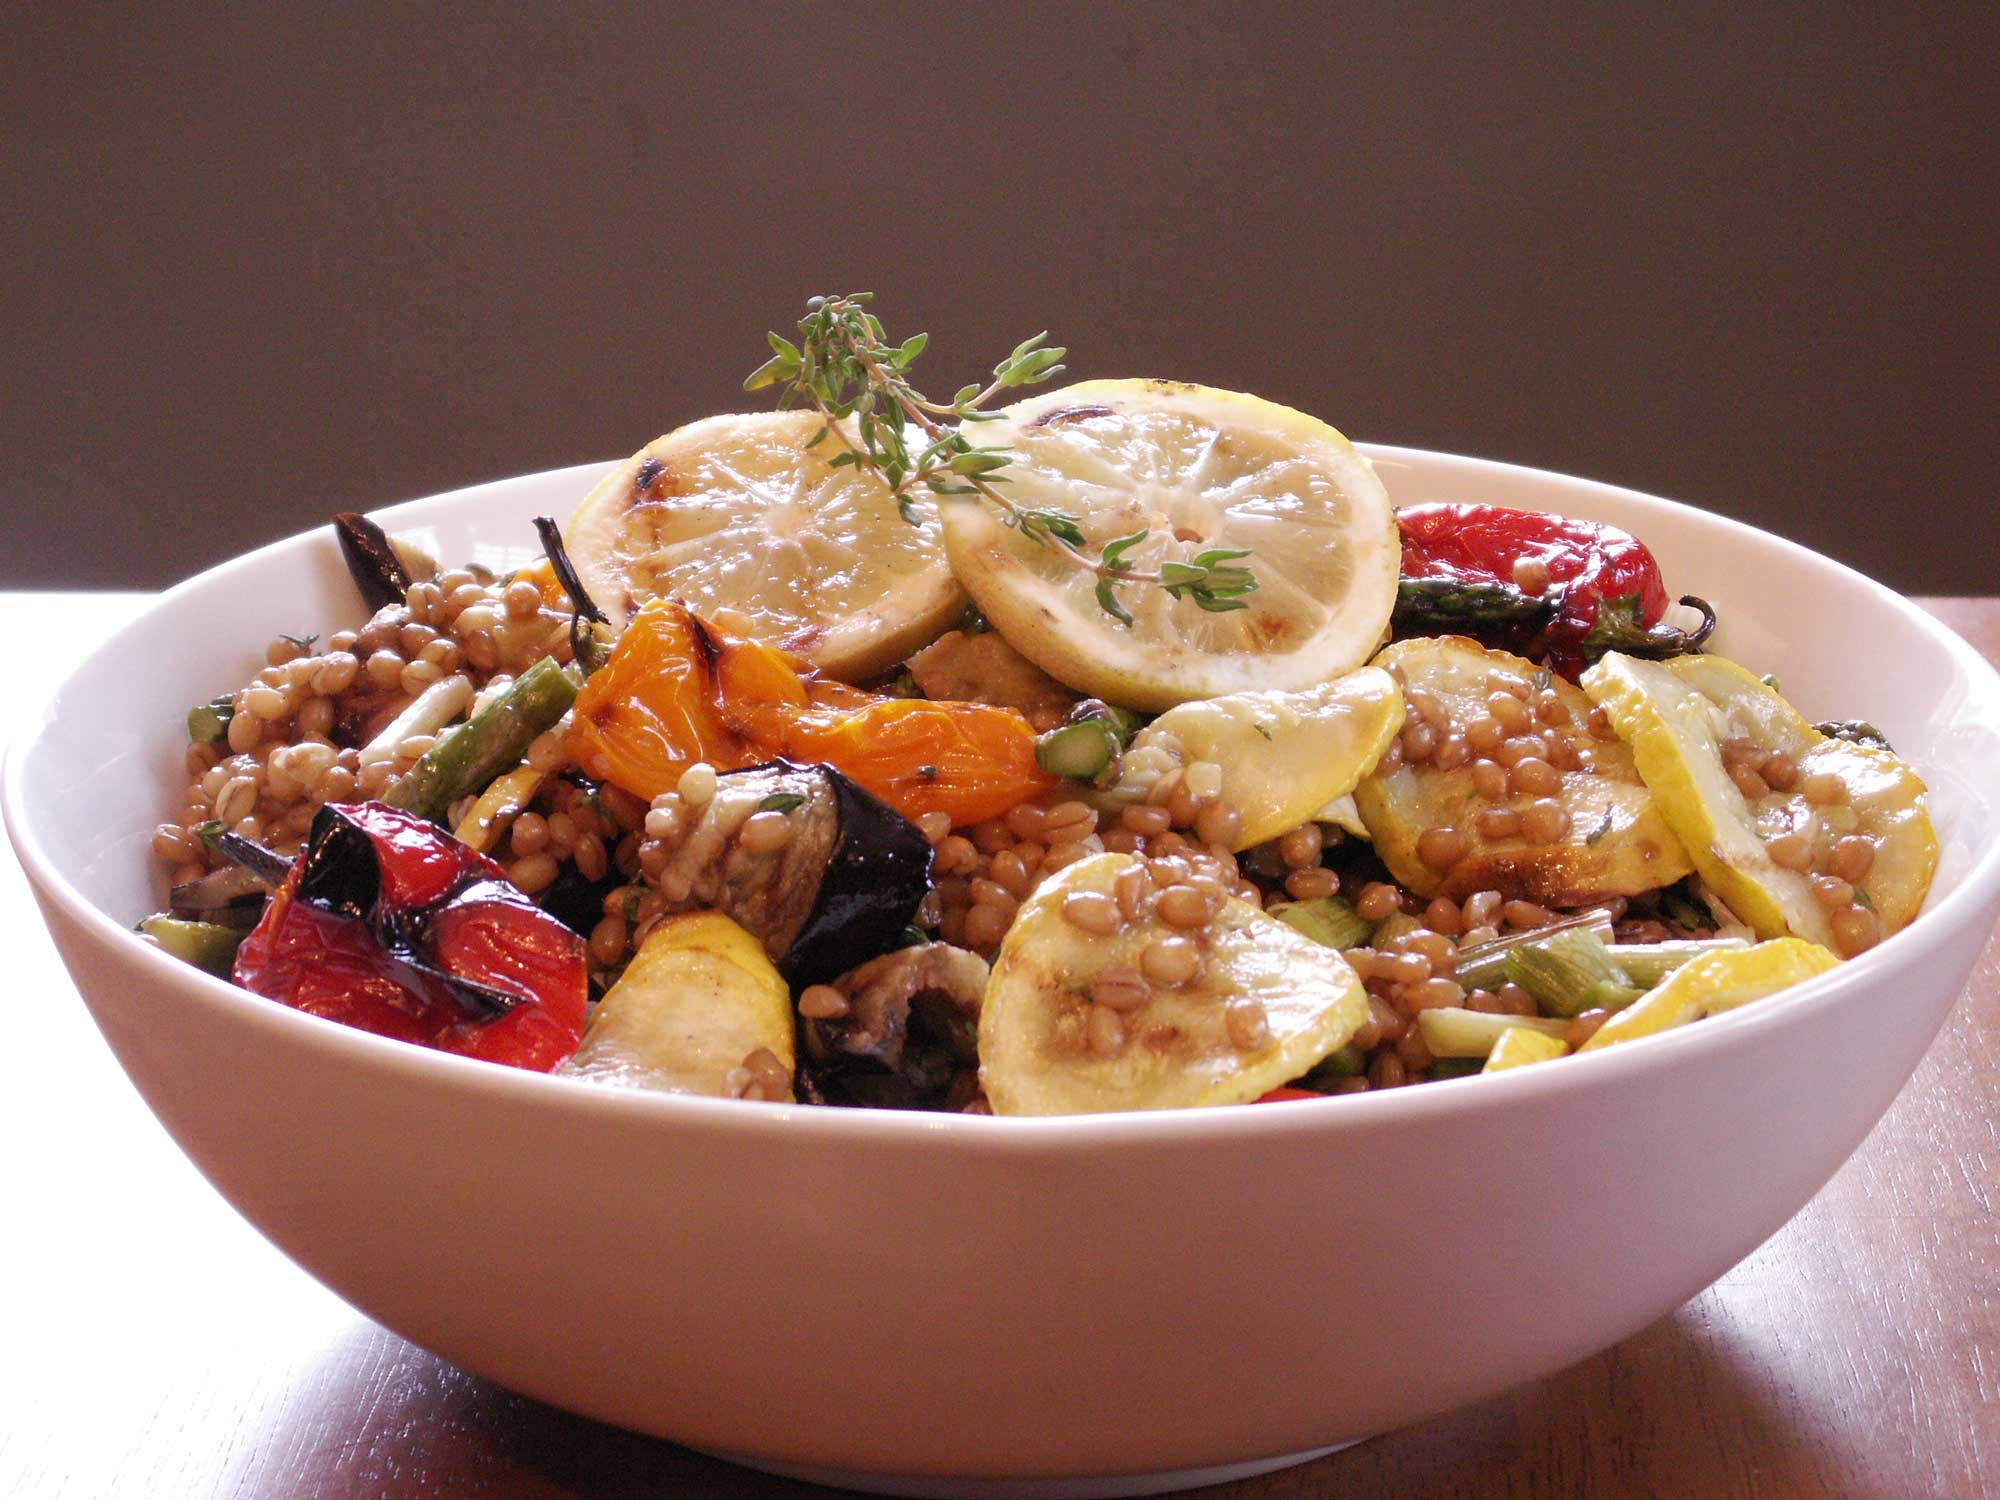 Grilled vegetable and wheat berry salad in white bowl.